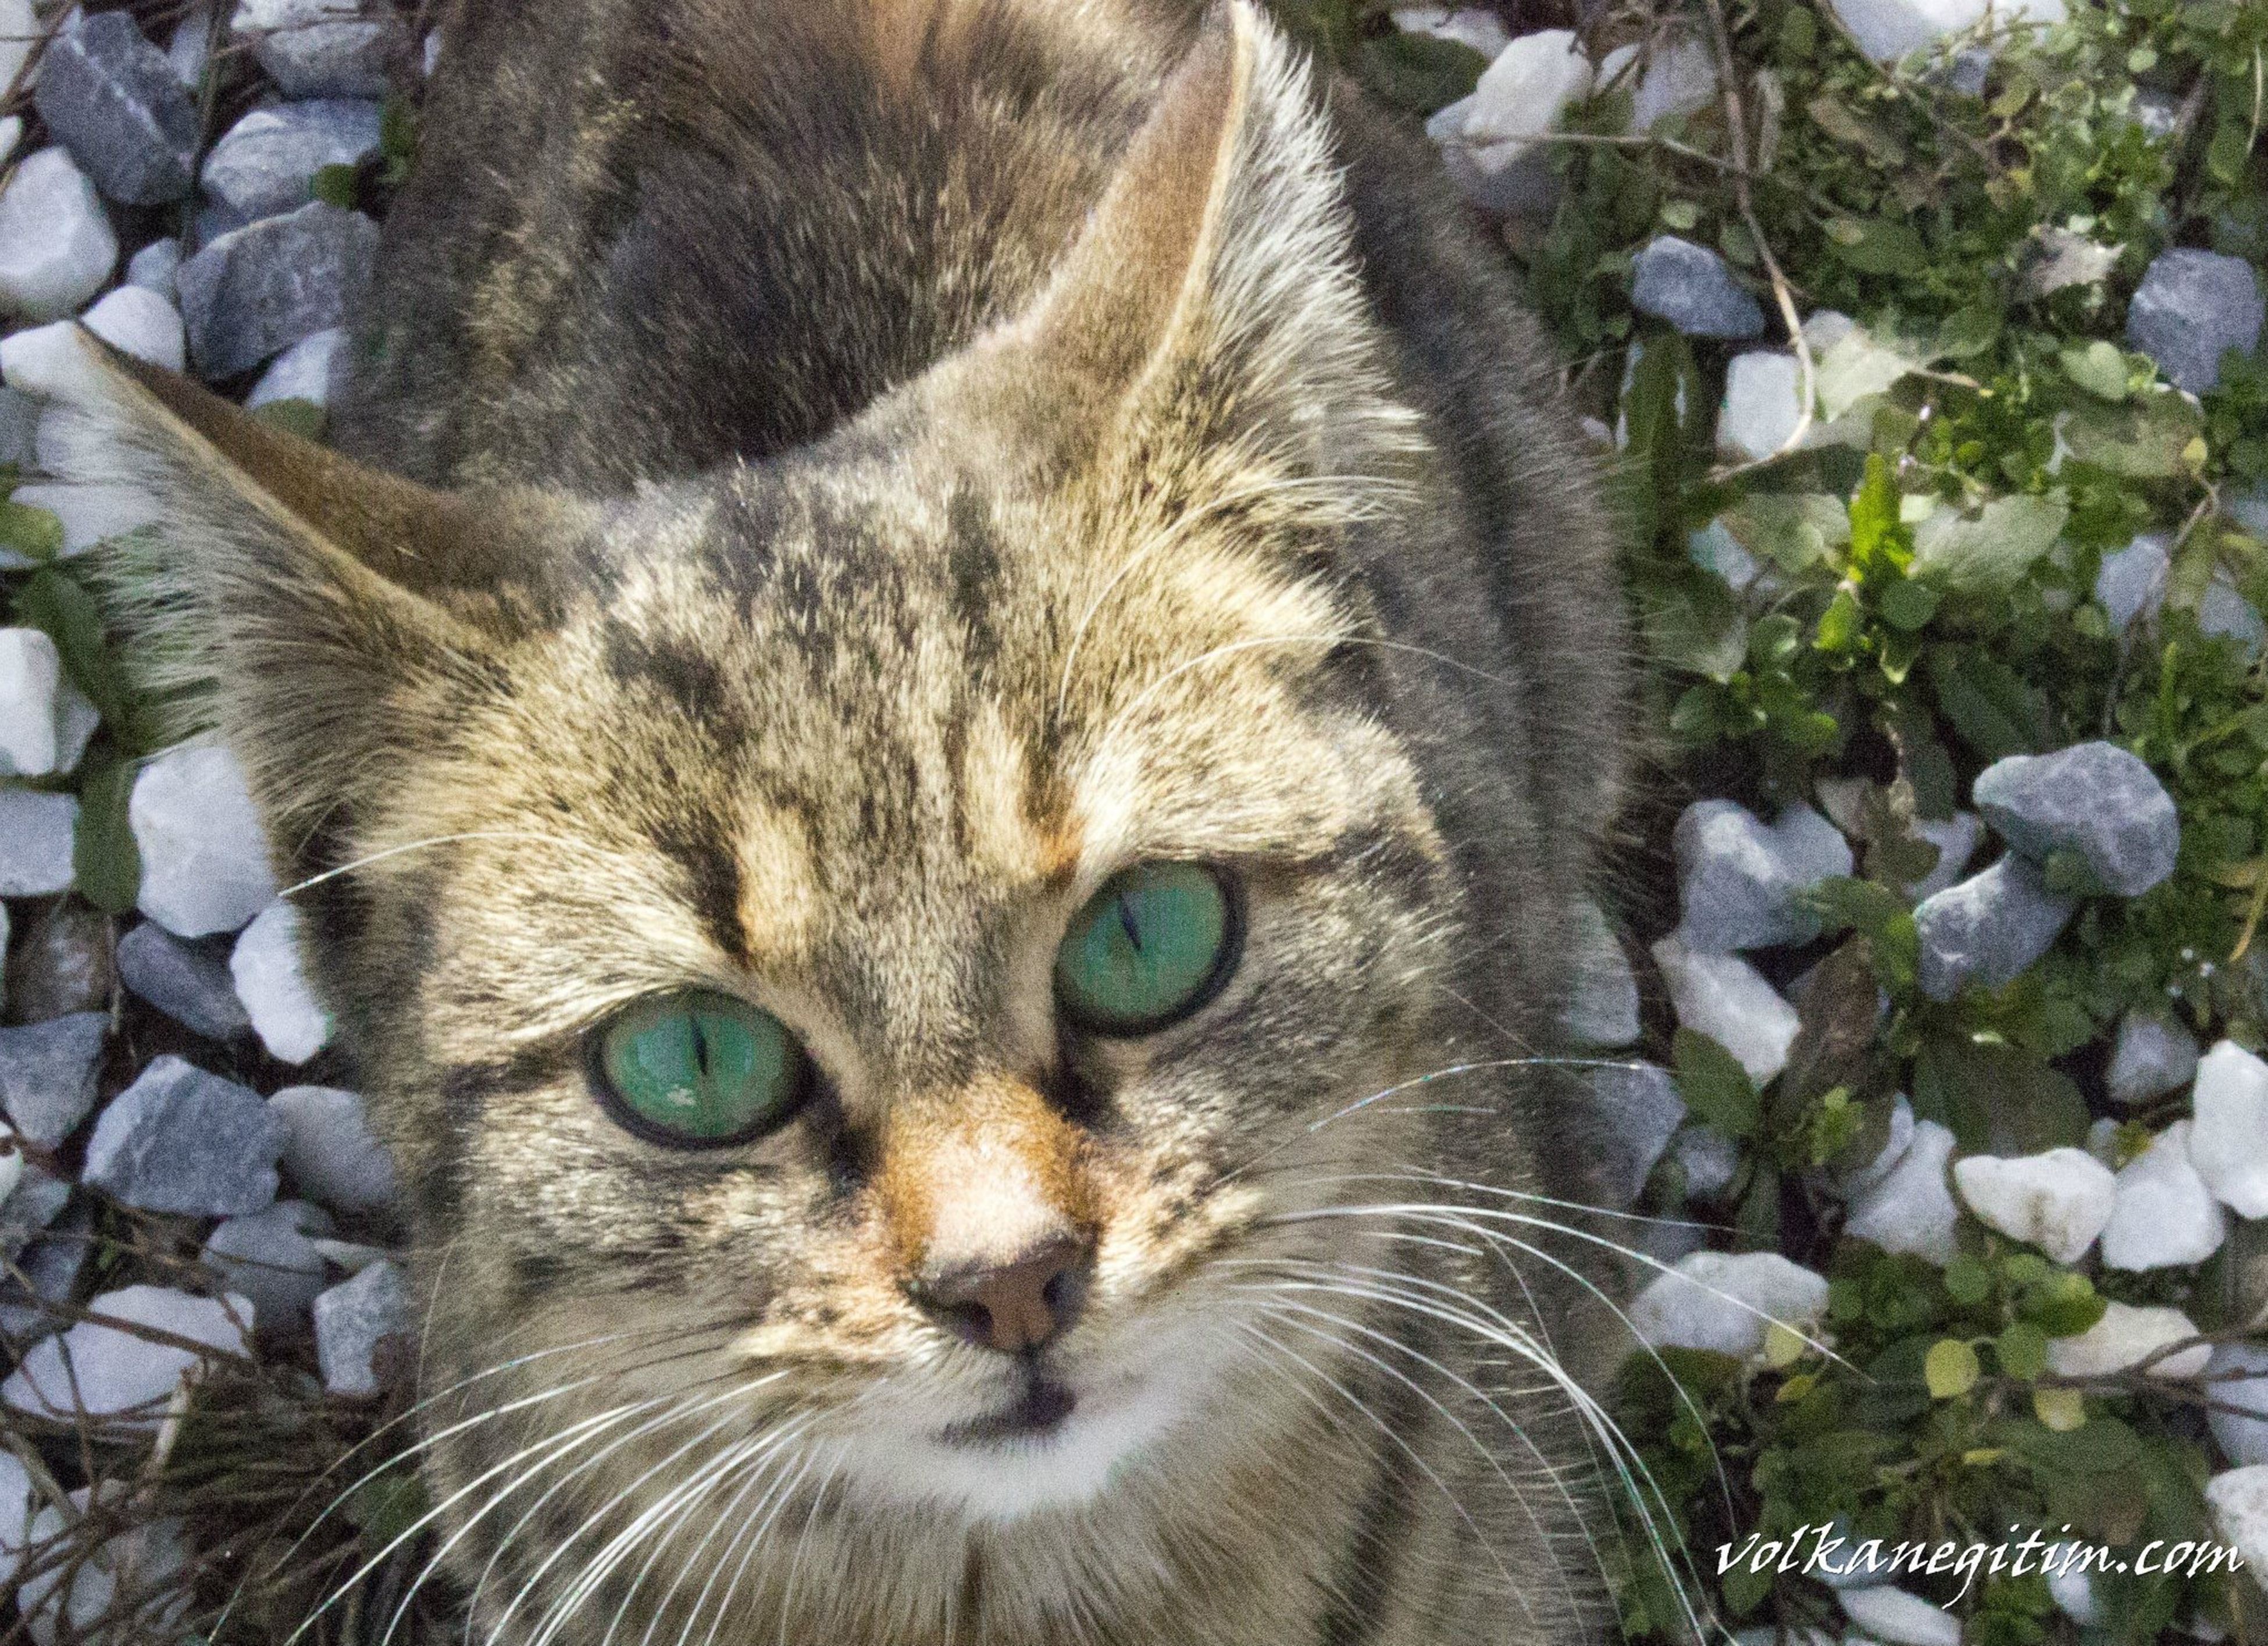 domestic cat, cat, feline, animal themes, one animal, domestic animals, pets, whisker, mammal, looking at camera, portrait, close-up, animal head, high angle view, staring, animal eye, alertness, no people, relaxation, outdoors